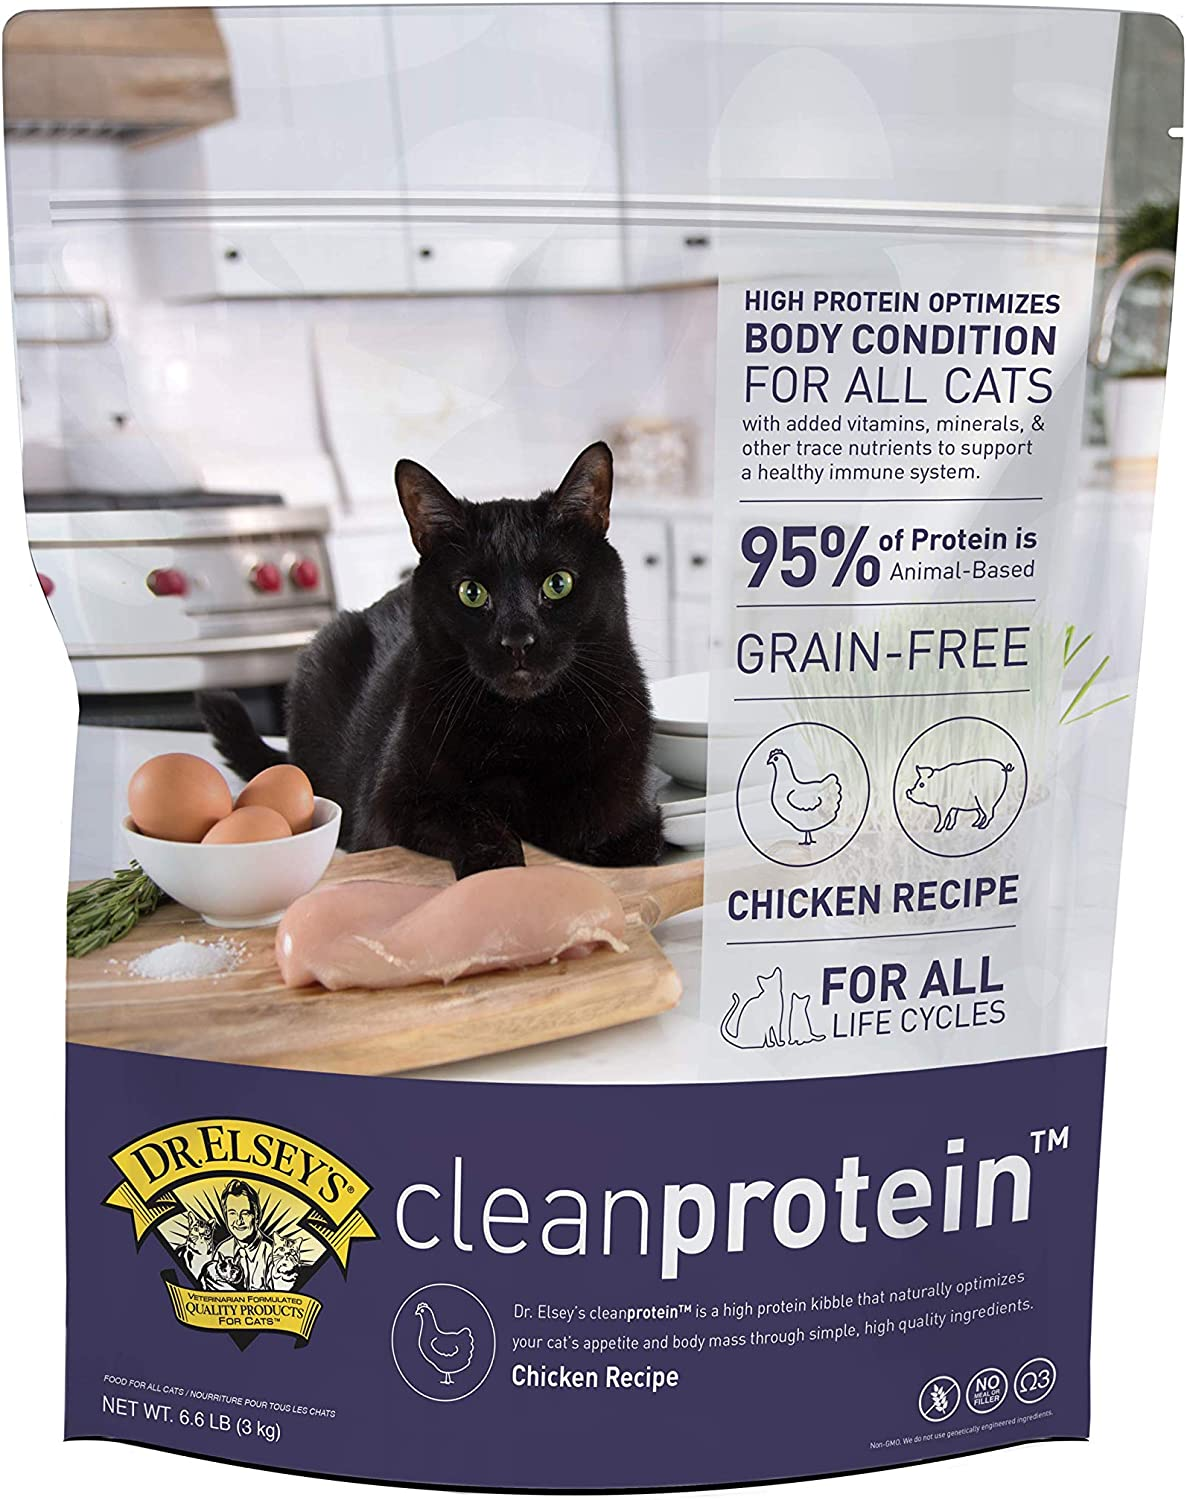 Dr. Elsey's Cleanprotein Formula Dry Cat Food without fillers